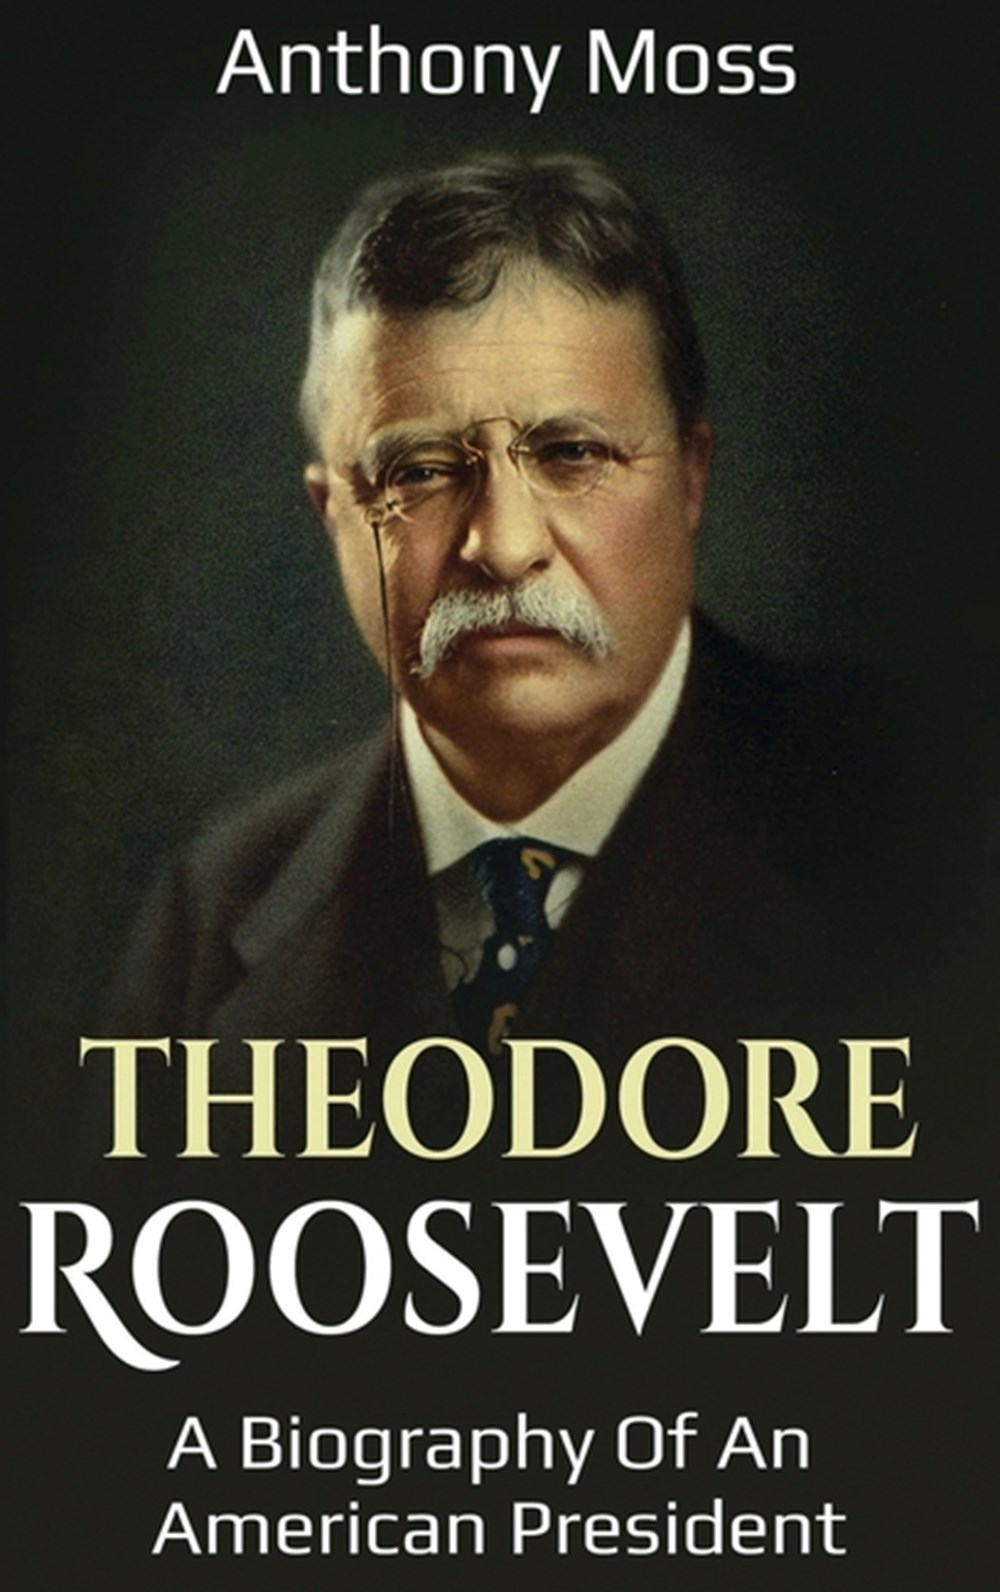 Theodore Roosevelt A biography of an American President